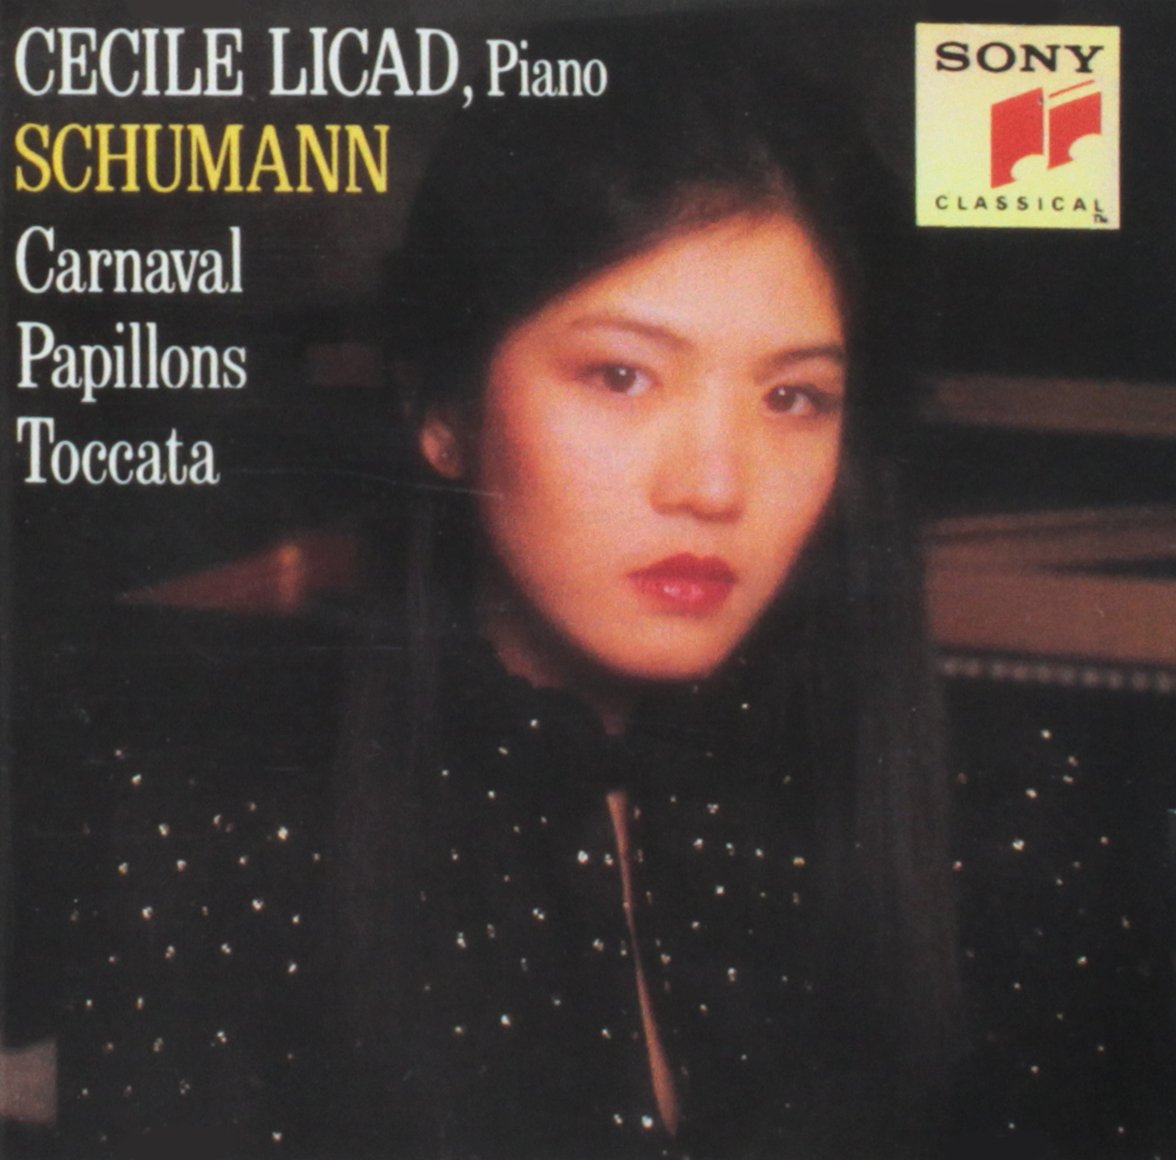 Schumann: Carnaval; Papillons; Toccata by Sony